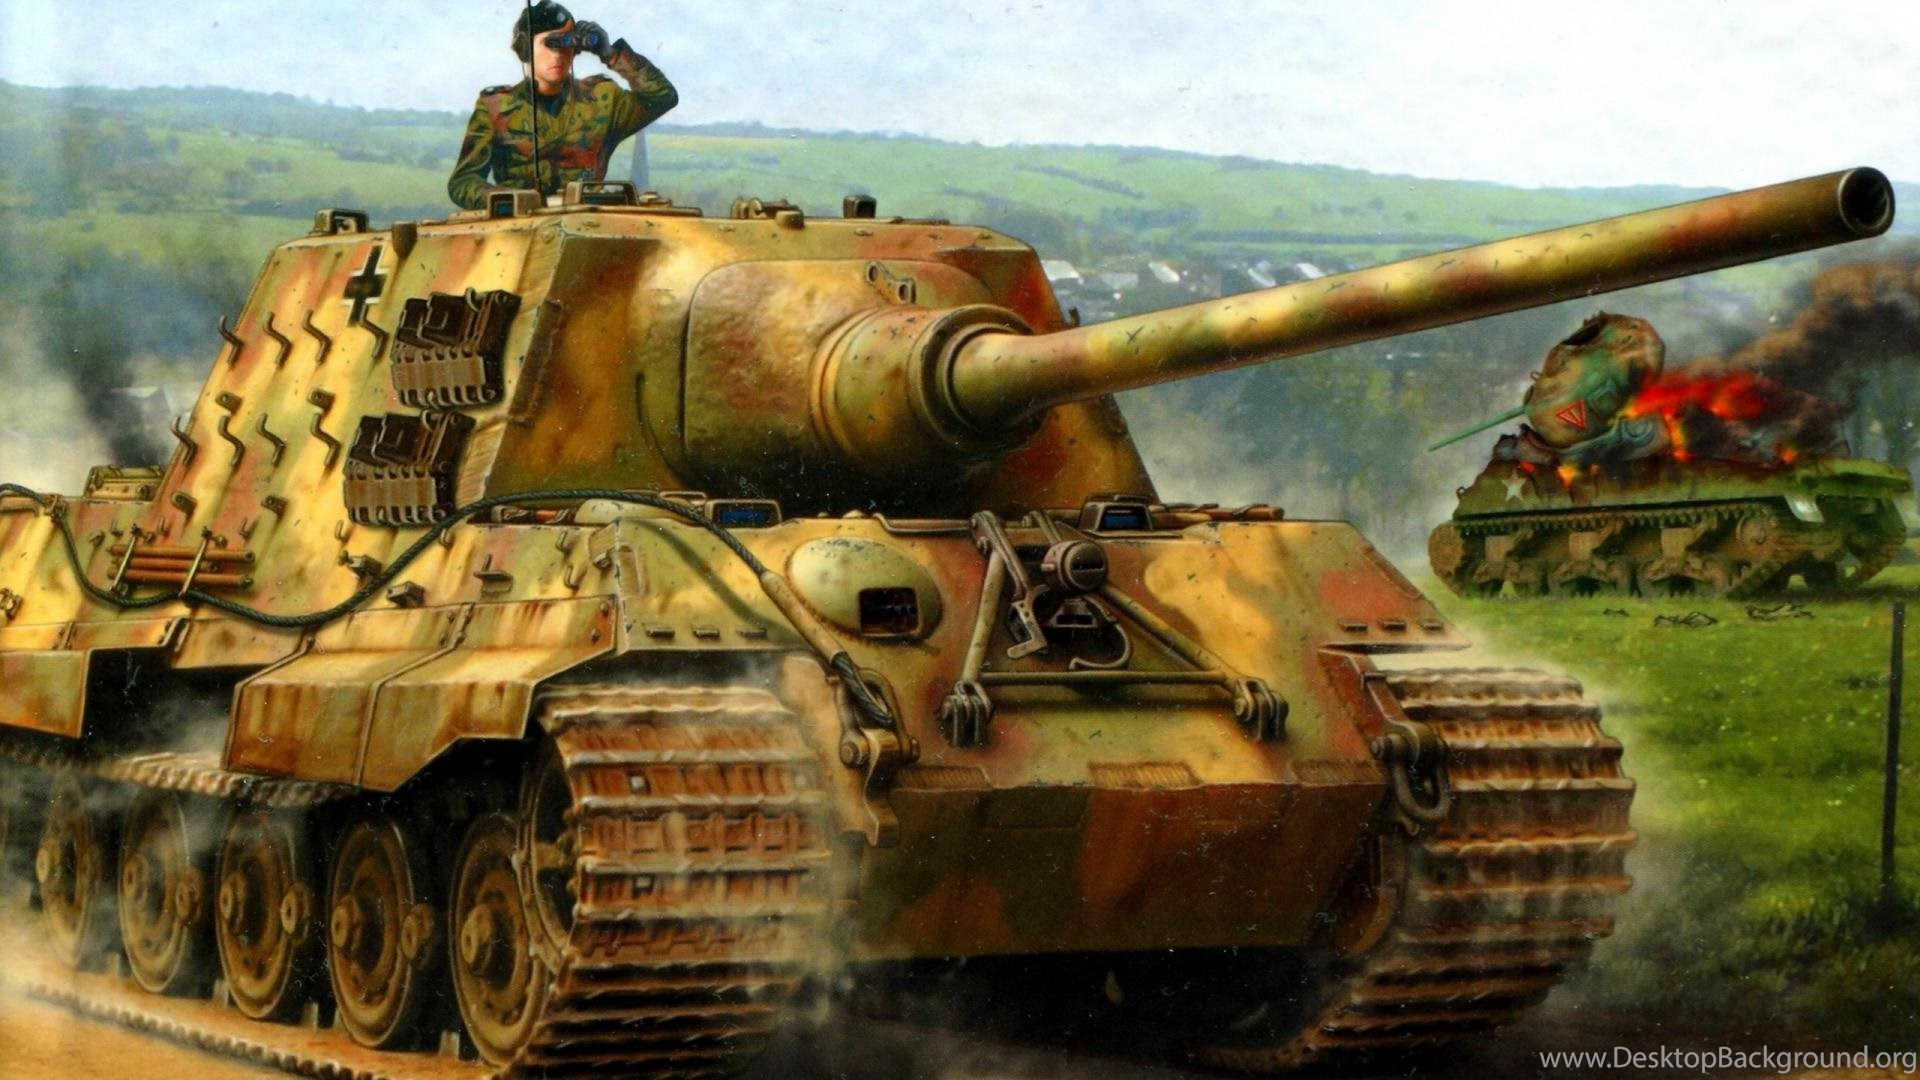 Tiger Tank Wallpapers All New Desktop Background